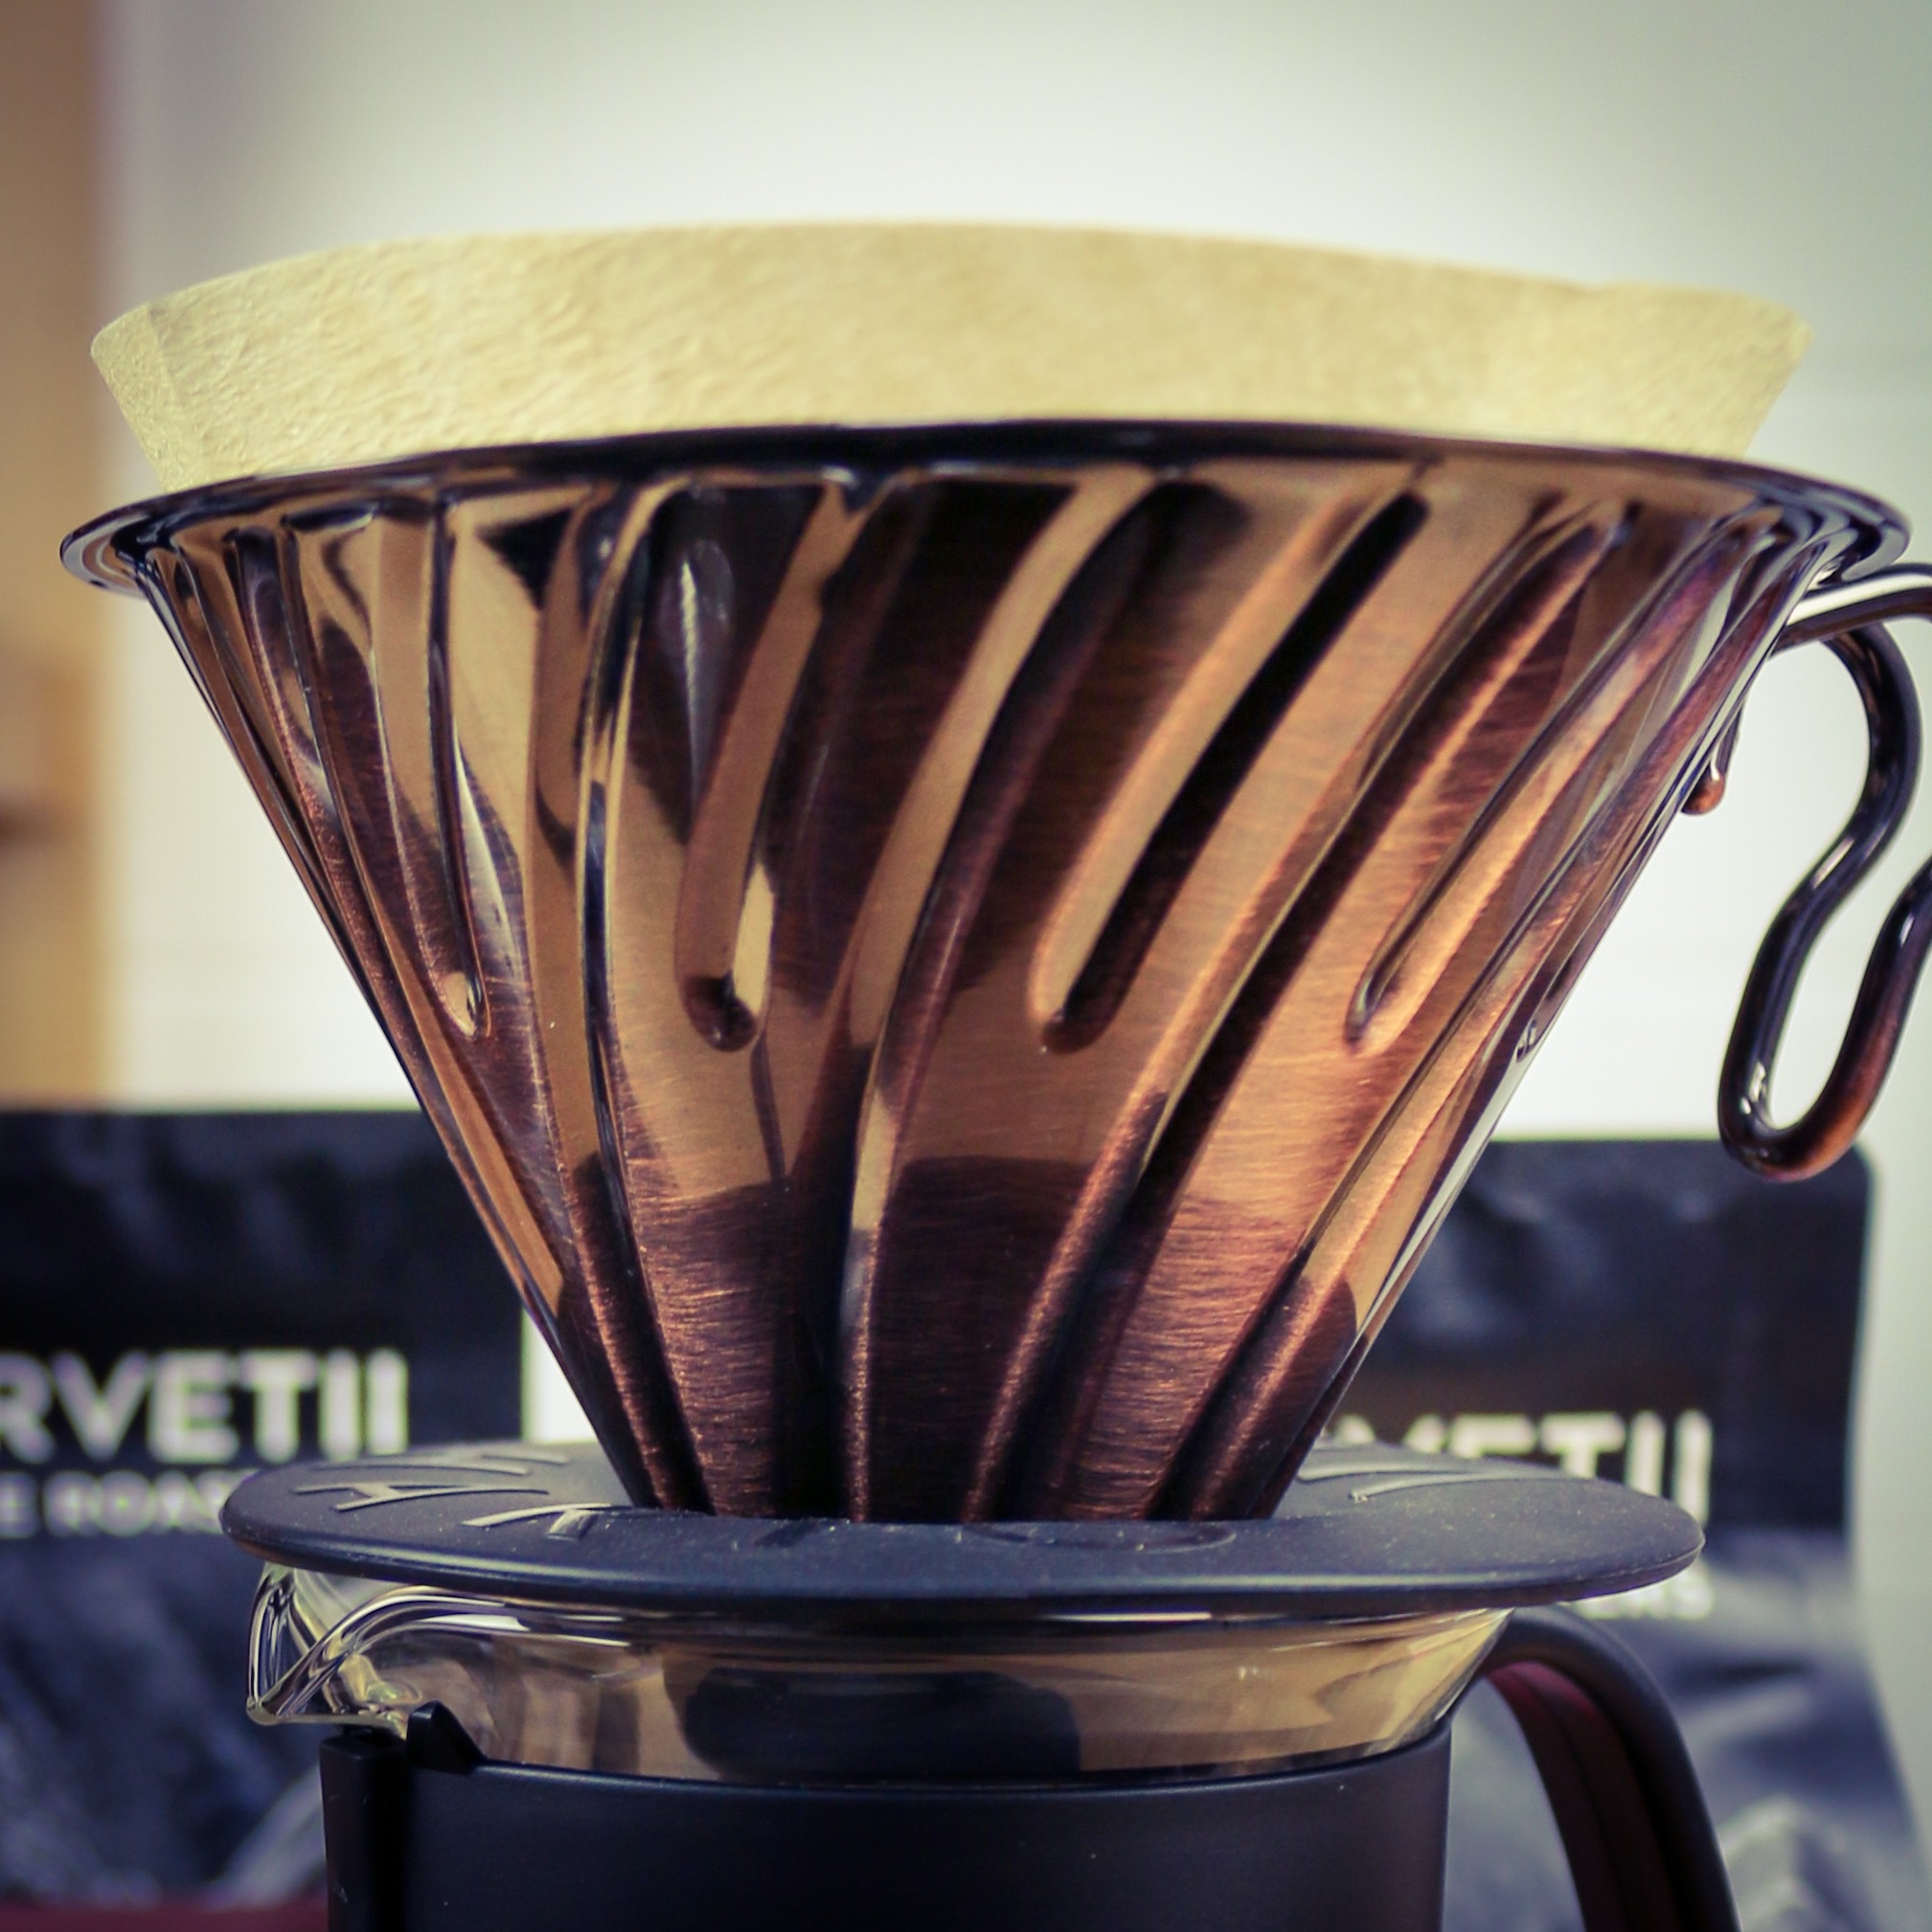 The Carvetii Guide to the V60 via @carvetiicoffee